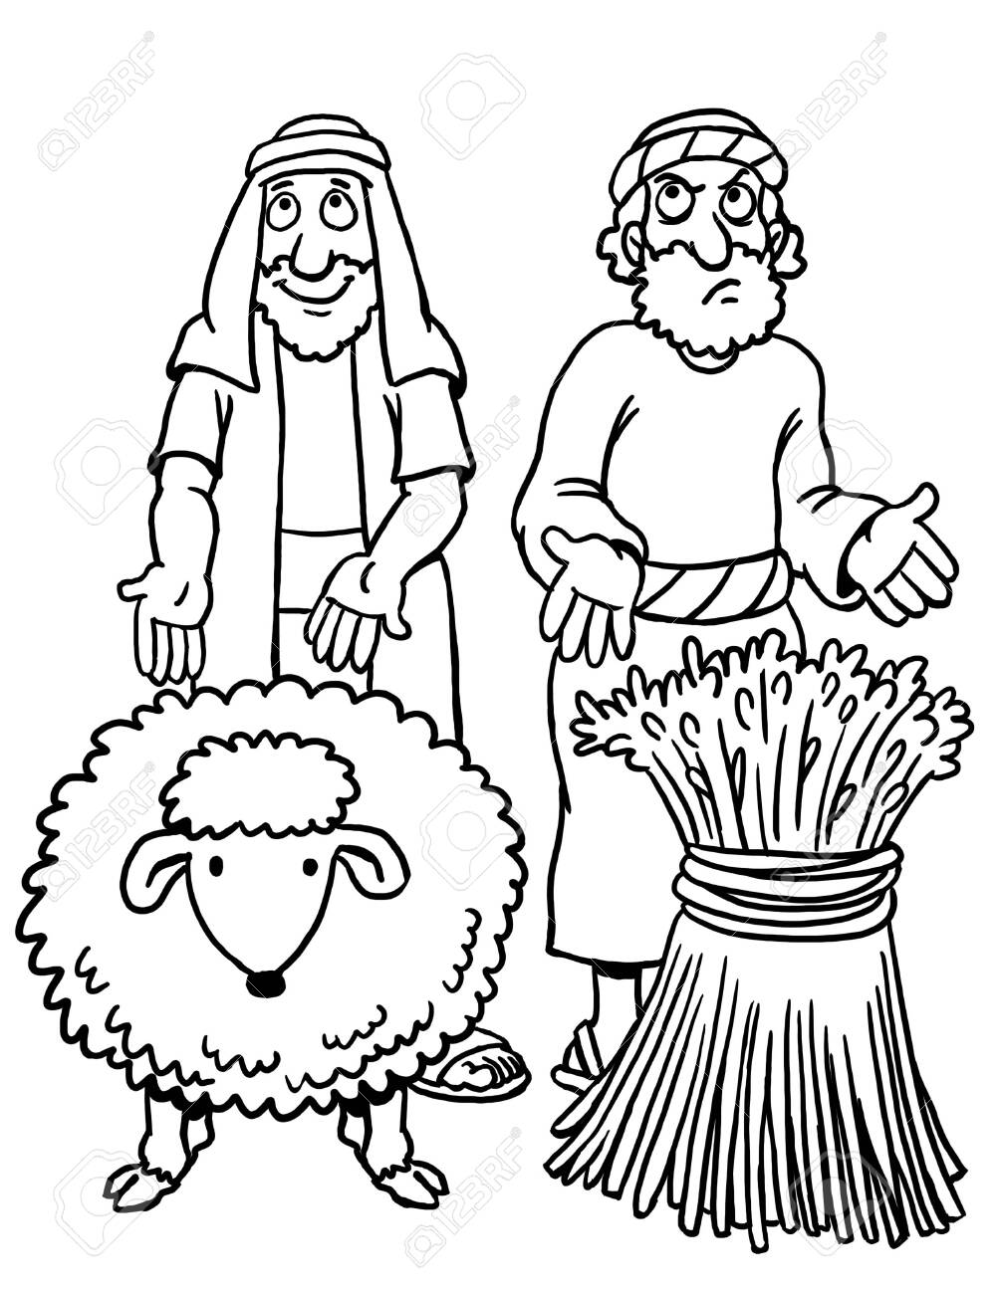 Coloring Page Of Cain And Abel Cain And Abel Coloring Pages Bible Coloring Pages